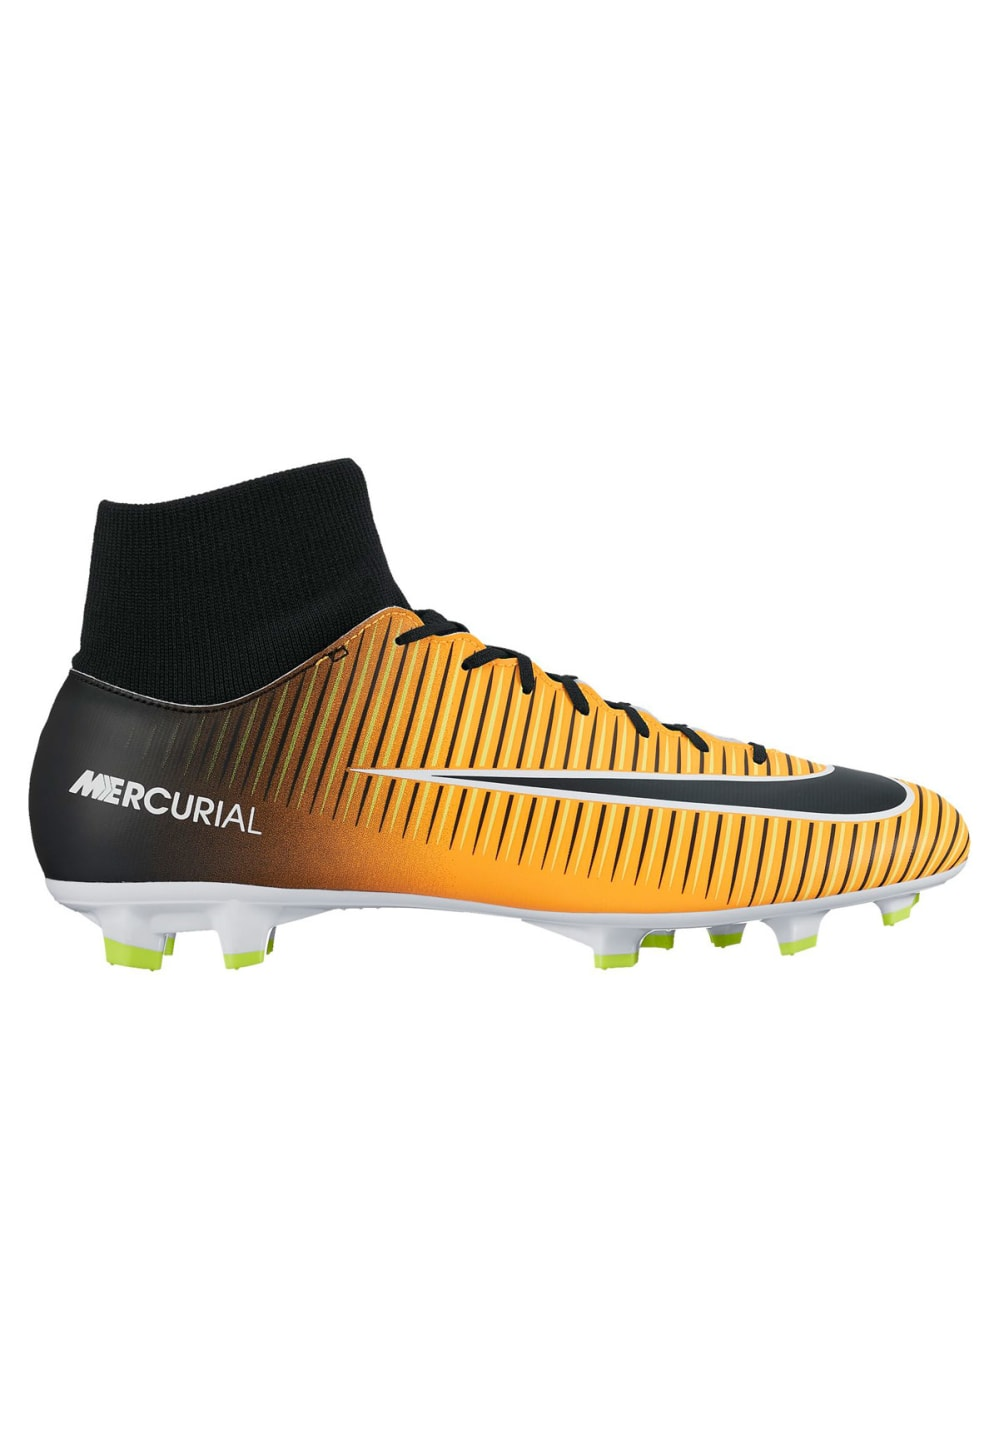 info for 6e664 fae26 Next. Nike. Mercurial Victory VI Dynamic Fit FG - Football ...